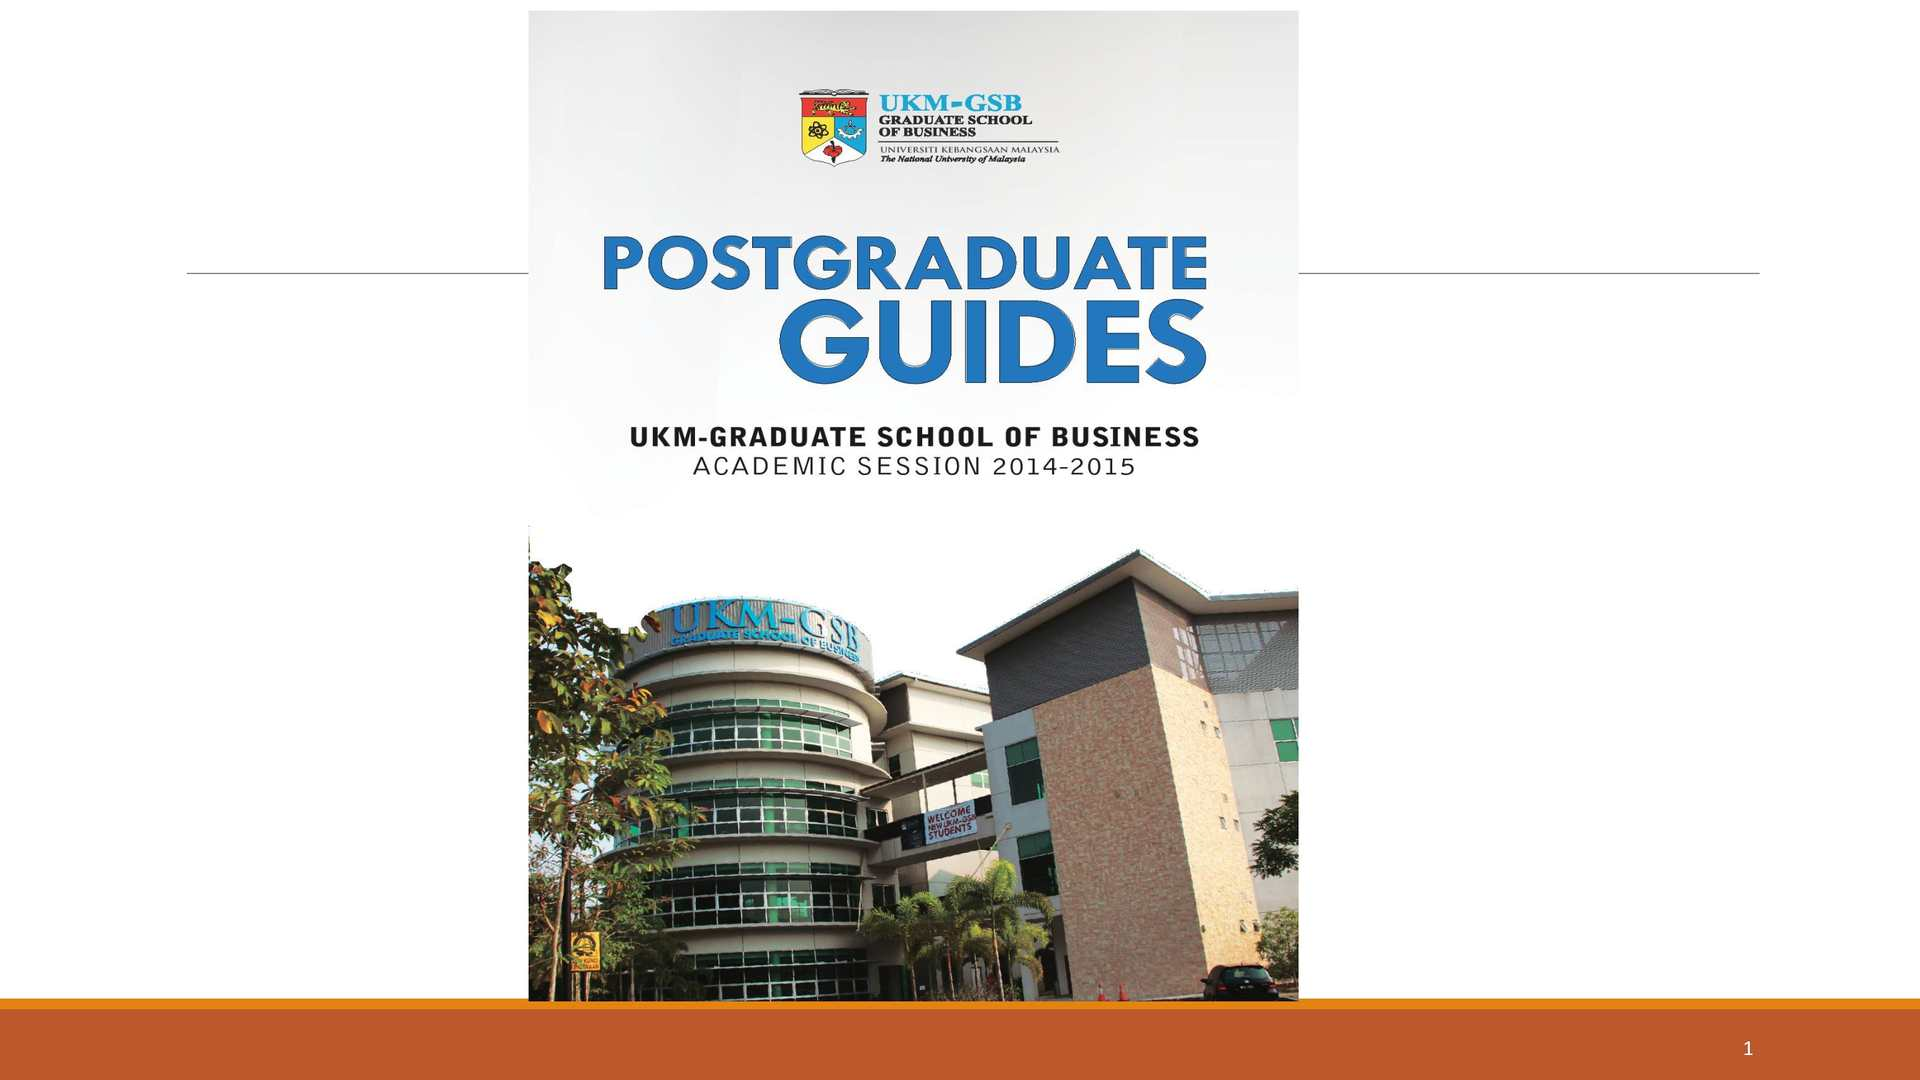 Postgraduate studies in coursework